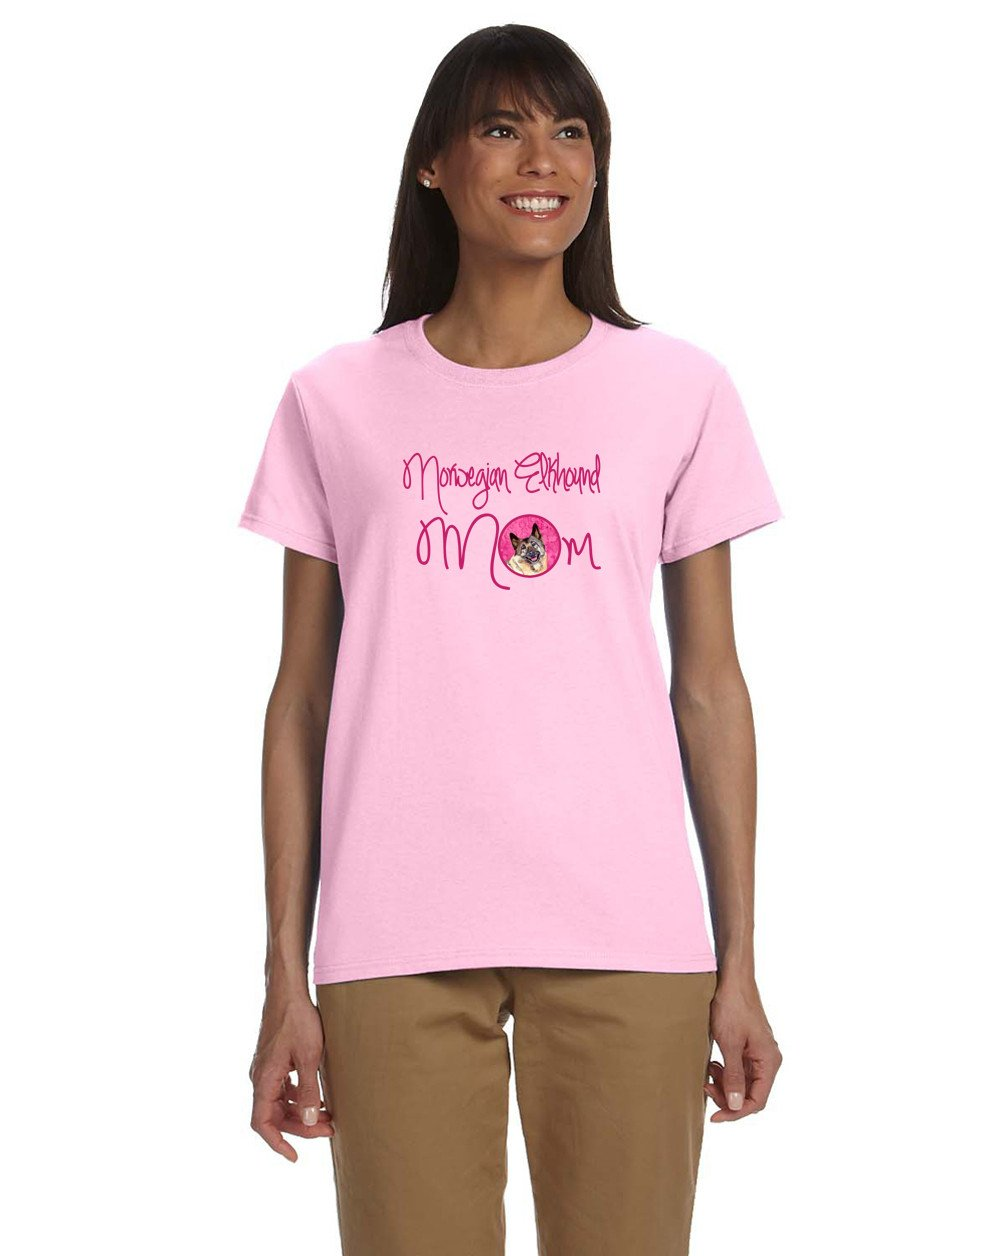 Pink Norwegian Elkhound Mom T-shirt Ladies Cut Short Sleeve Small LH9398PK-978-S by Caroline's Treasures